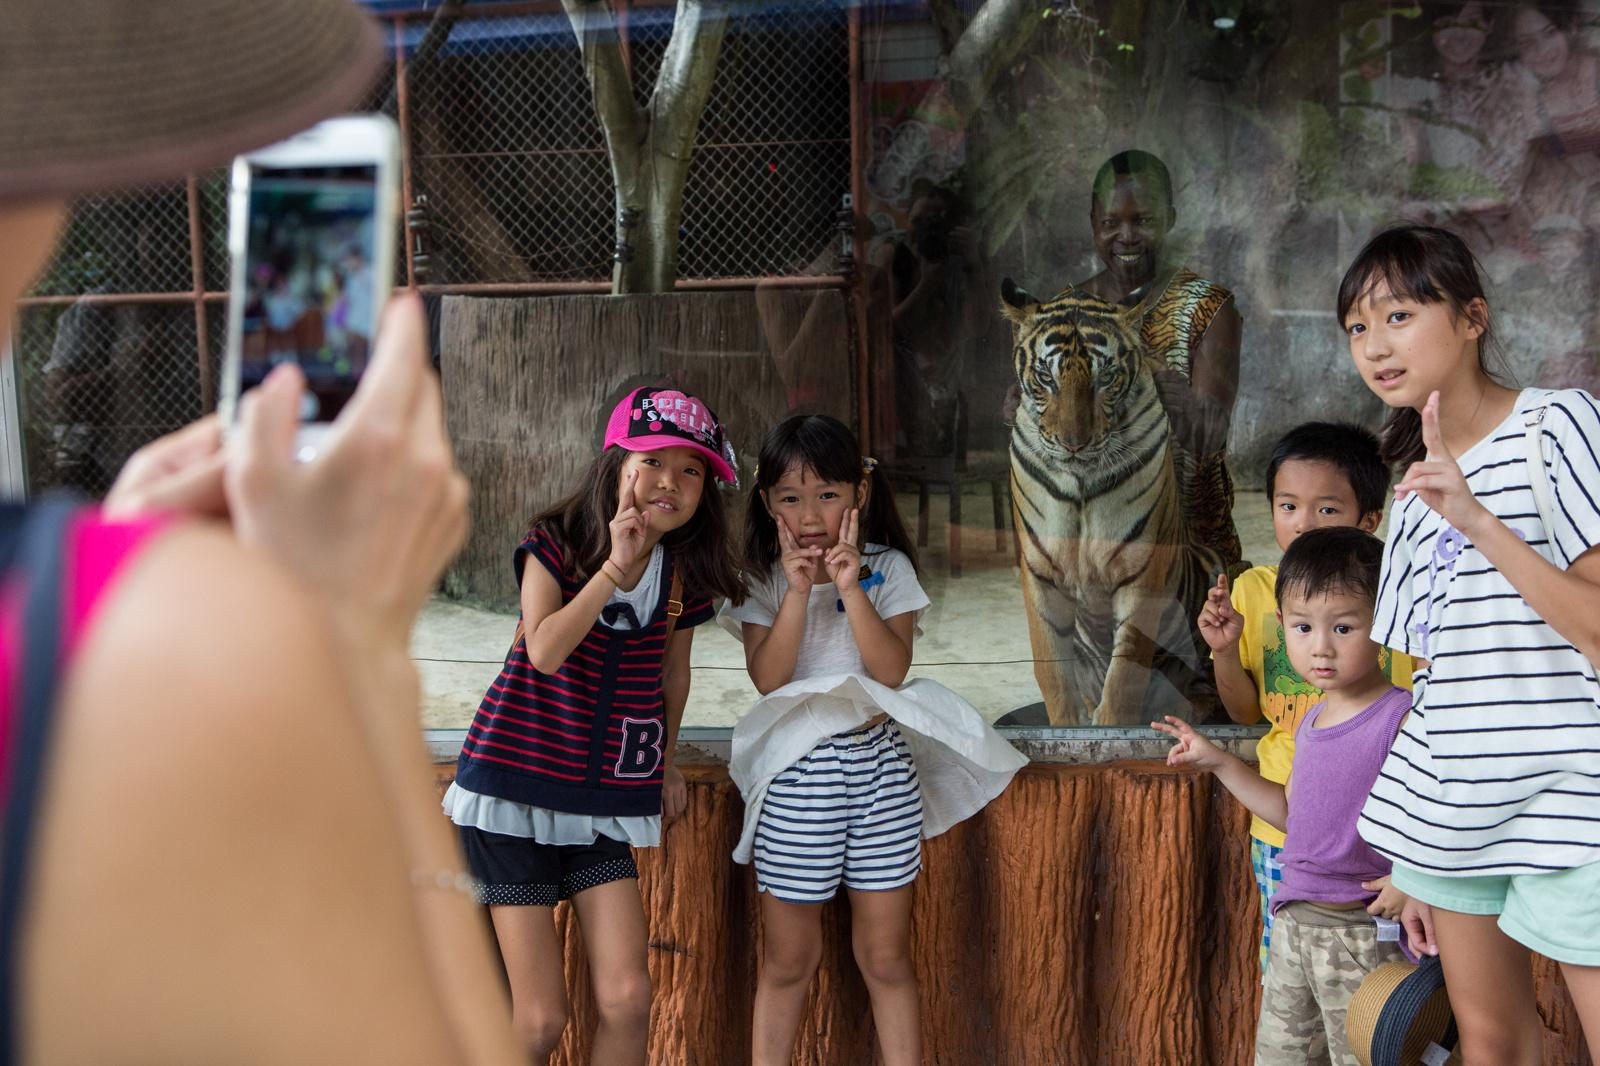 March 30, 2016 - Sriracha, Thailand - Tourists pose for a photo with Tony, a Kenyan man who plays a character role at the Sriracha Tiger Zoo. Tony moved to Thailand in the 1980's as a circus performer. He loved animals, and proposed this role to the zoo as a new career for himself. He lives in Sriracha with his wife and children. Photo by Amanda Mustard for the New York Times